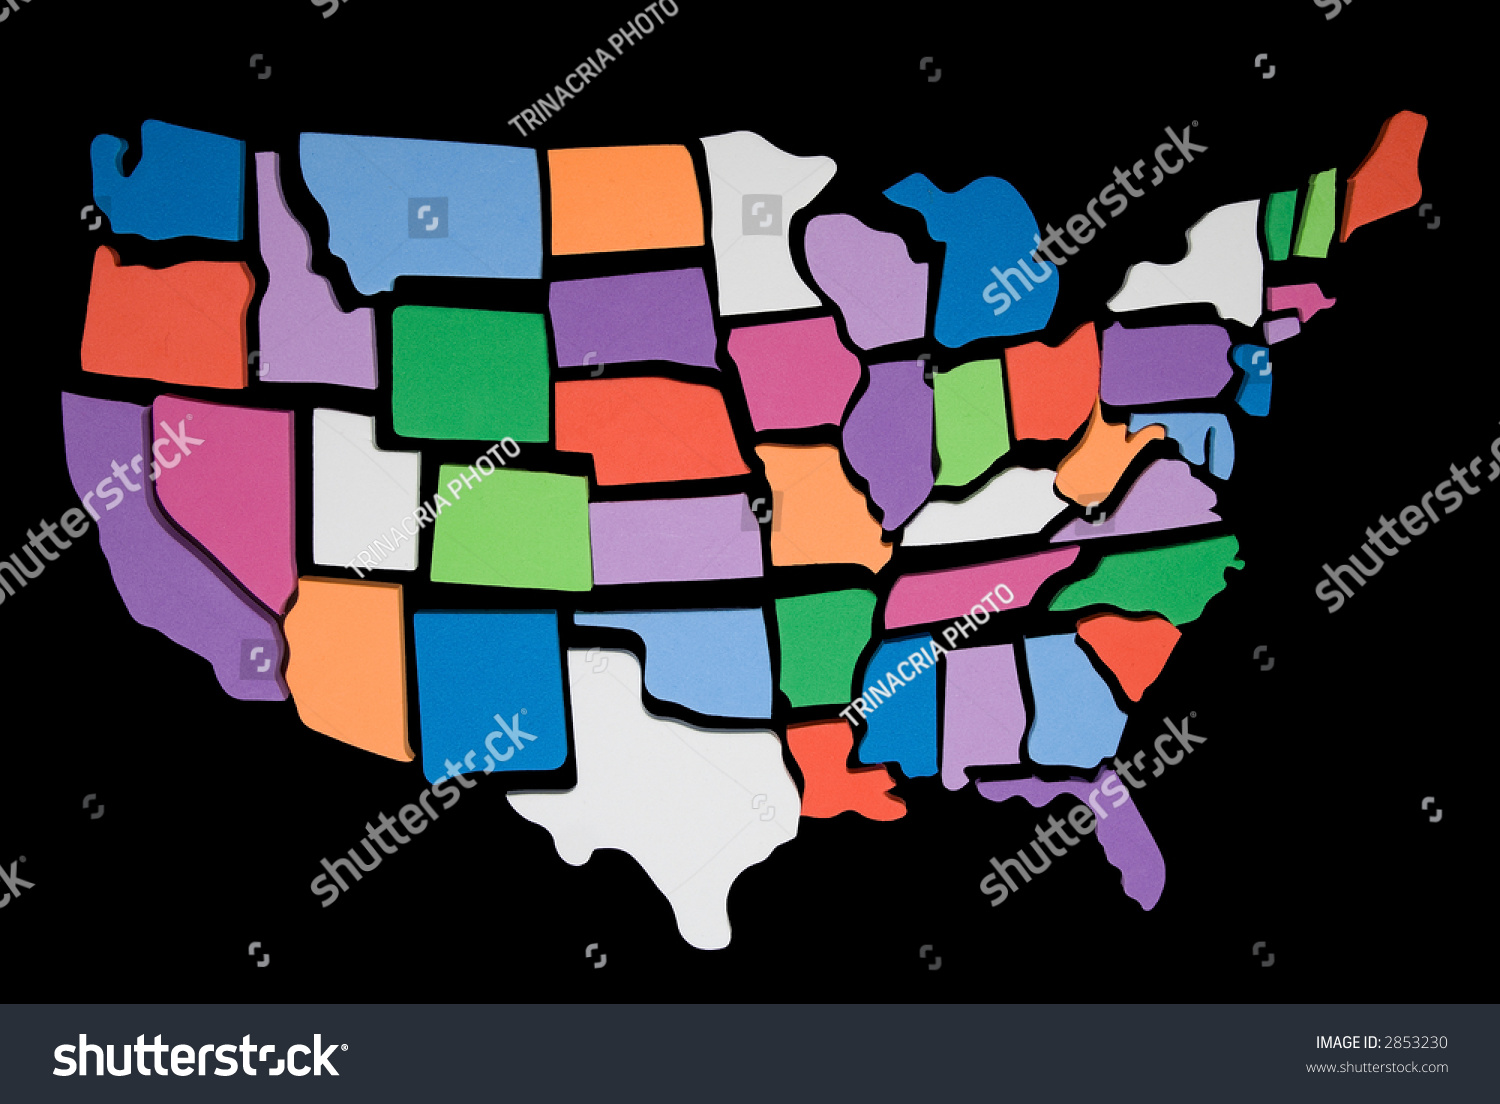 USA Map Puzzleusa Puzzle Android Apps On Google Play USA United - Us map pizzle